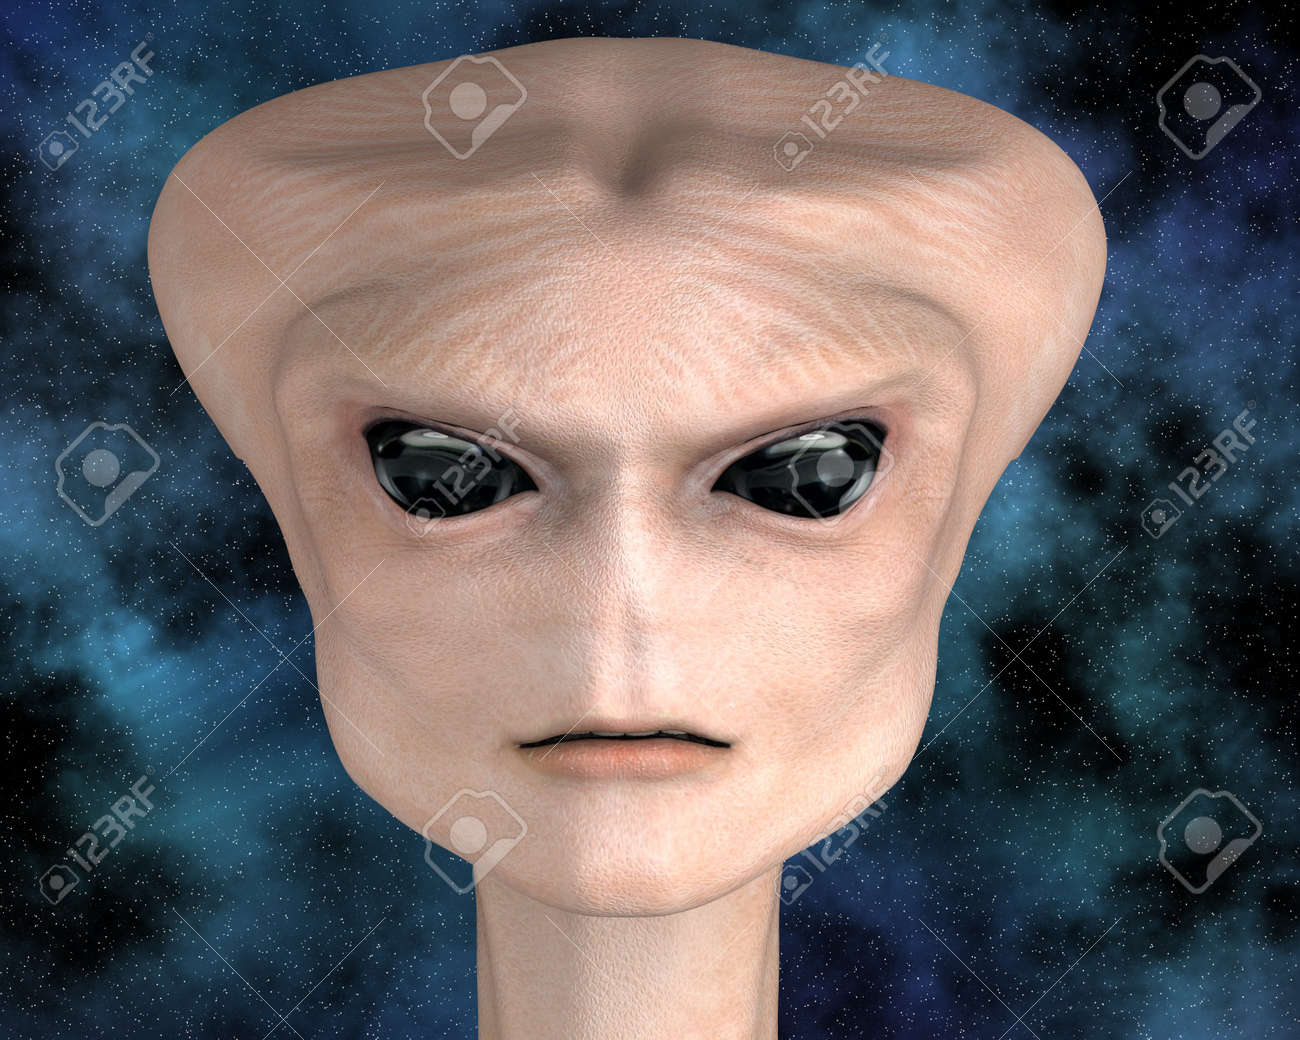 alien portrait with stars in background Stock Photo - 6881573